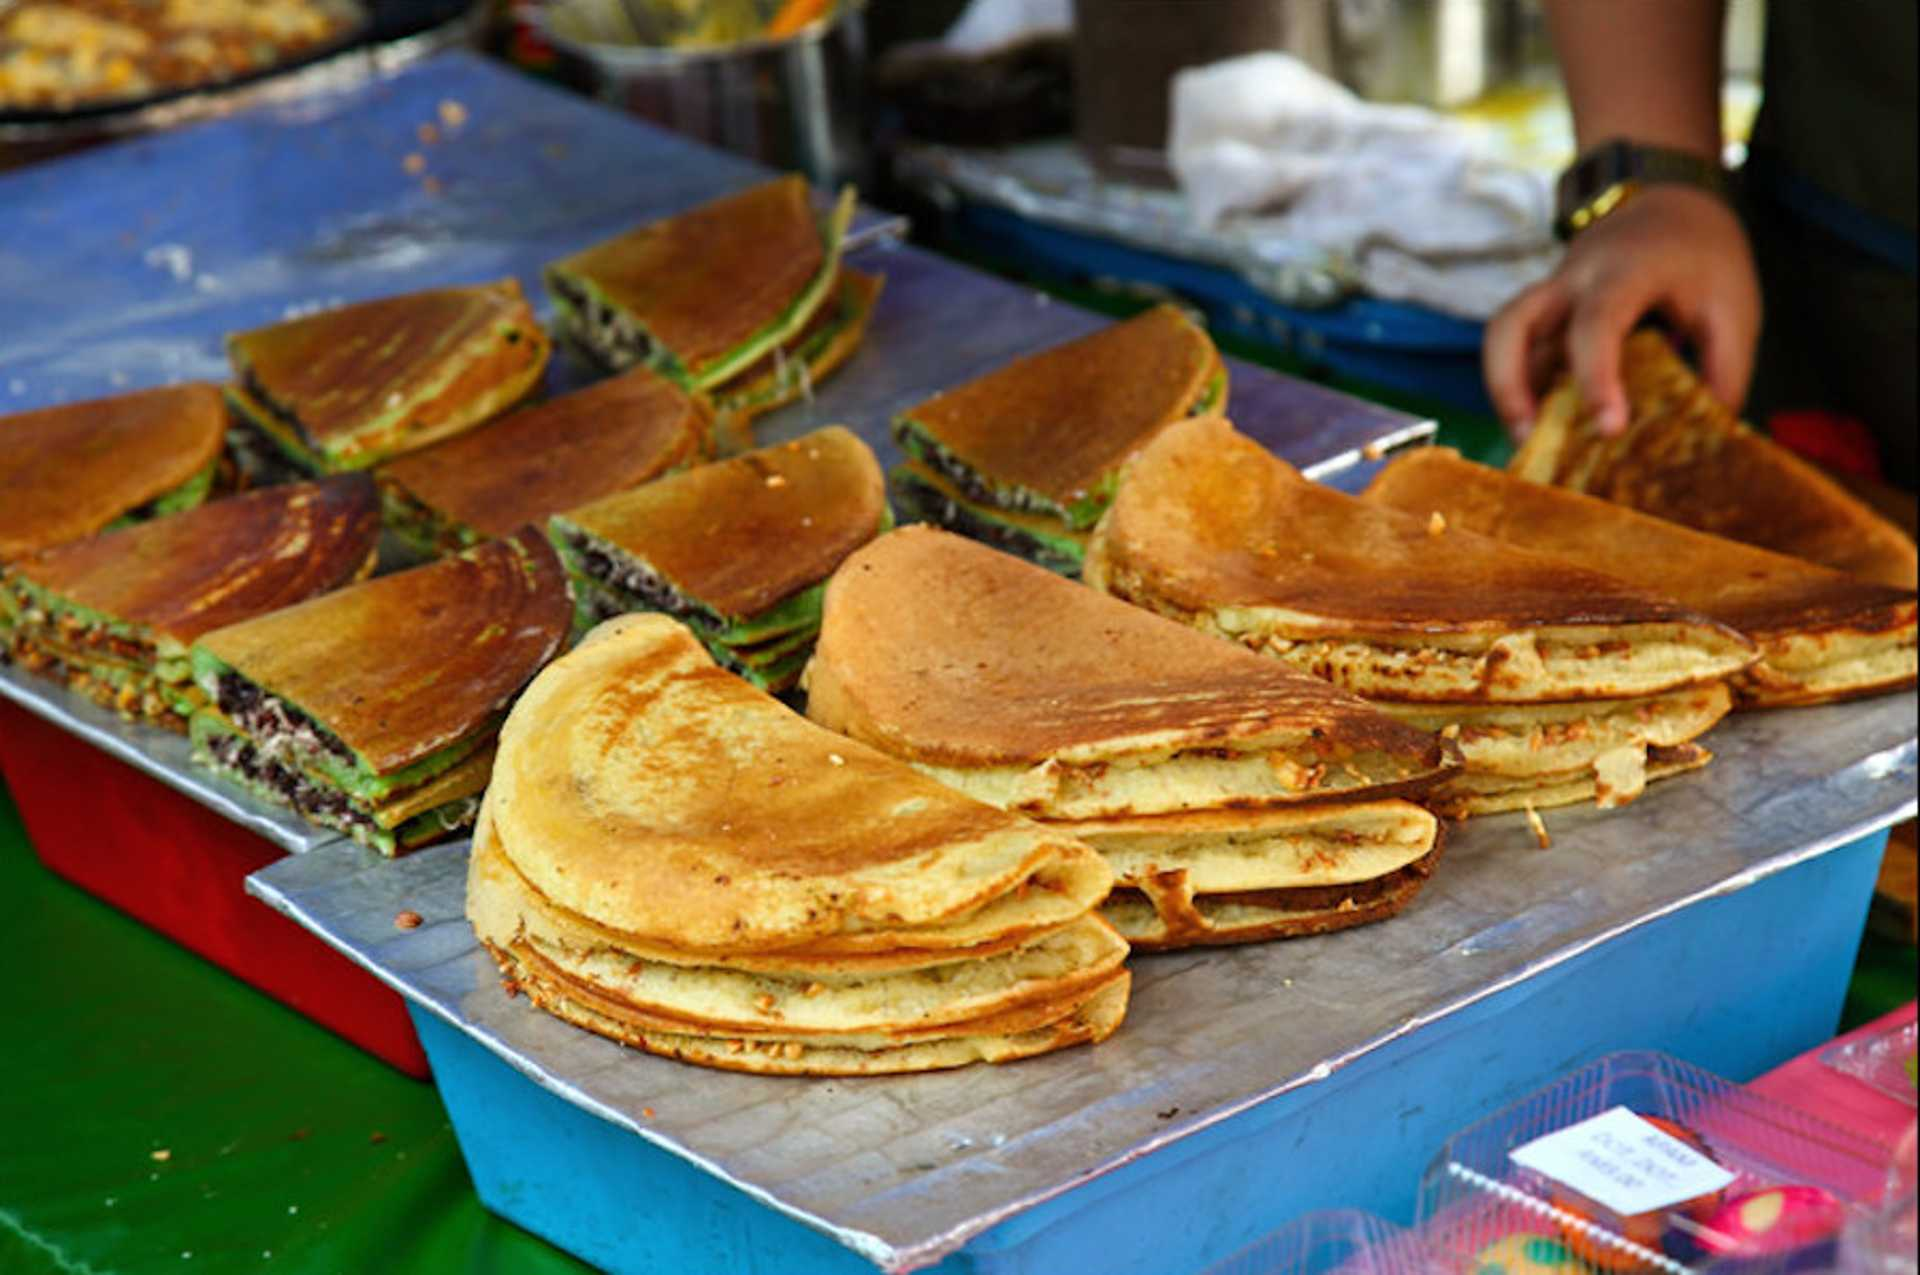 The pandan flavoured apam balik is a unique take on the classic